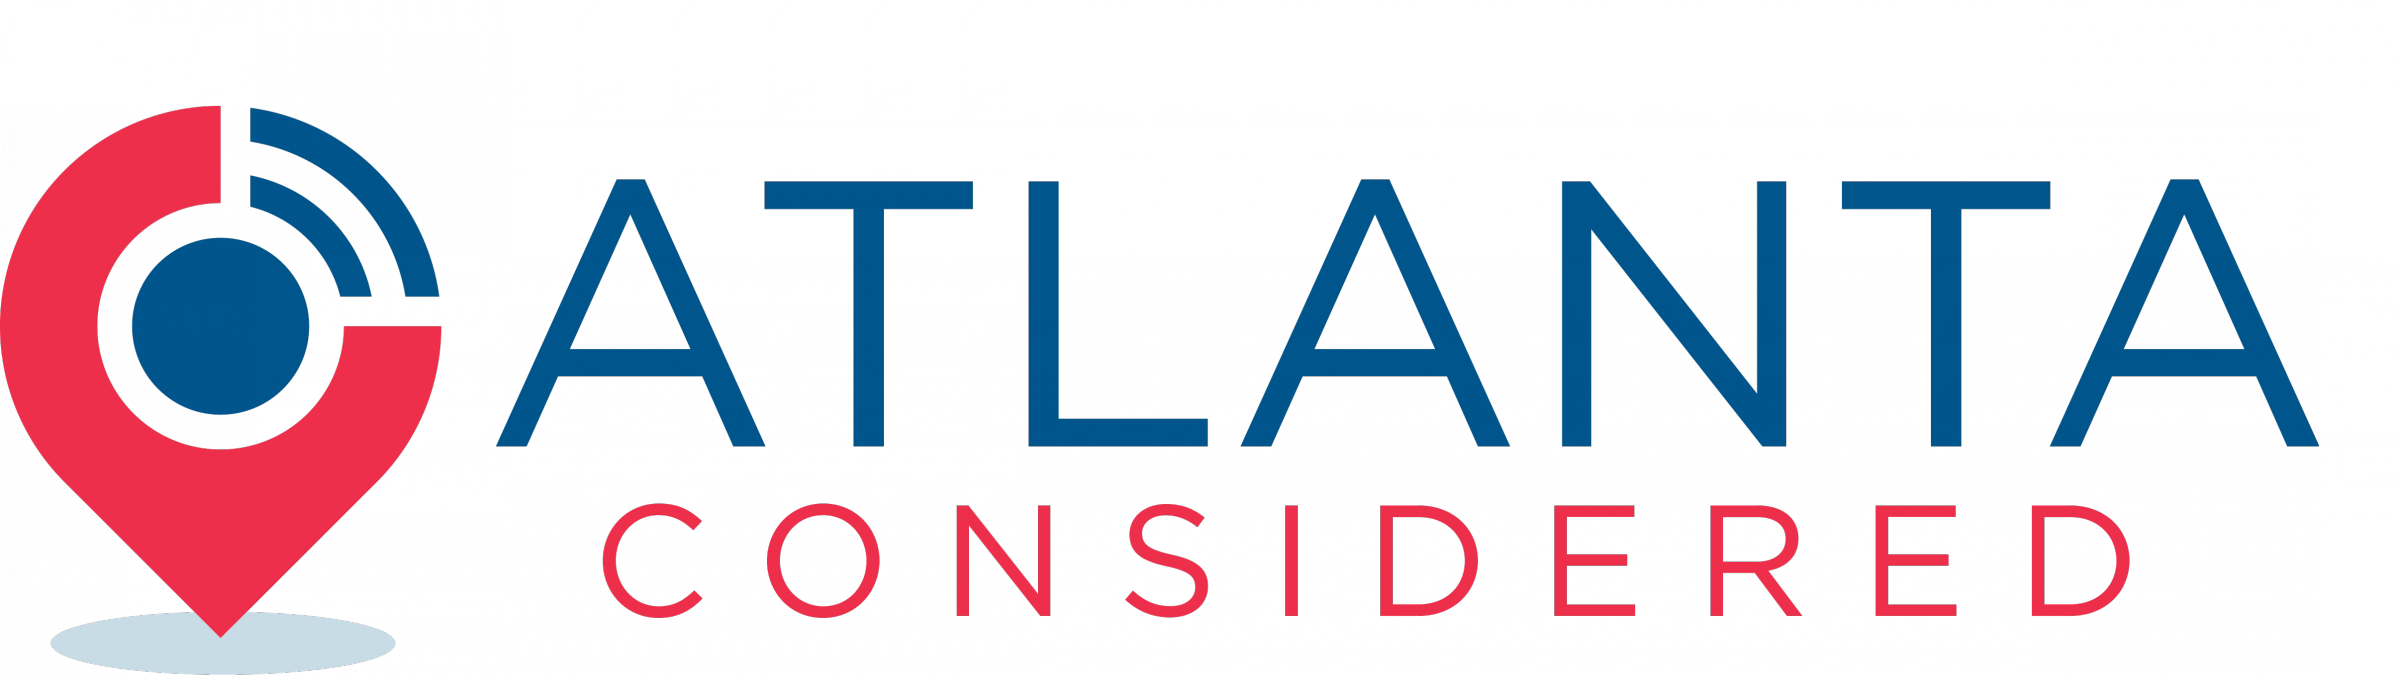 Atlanta Considered: How Smartphones And Science Could Help